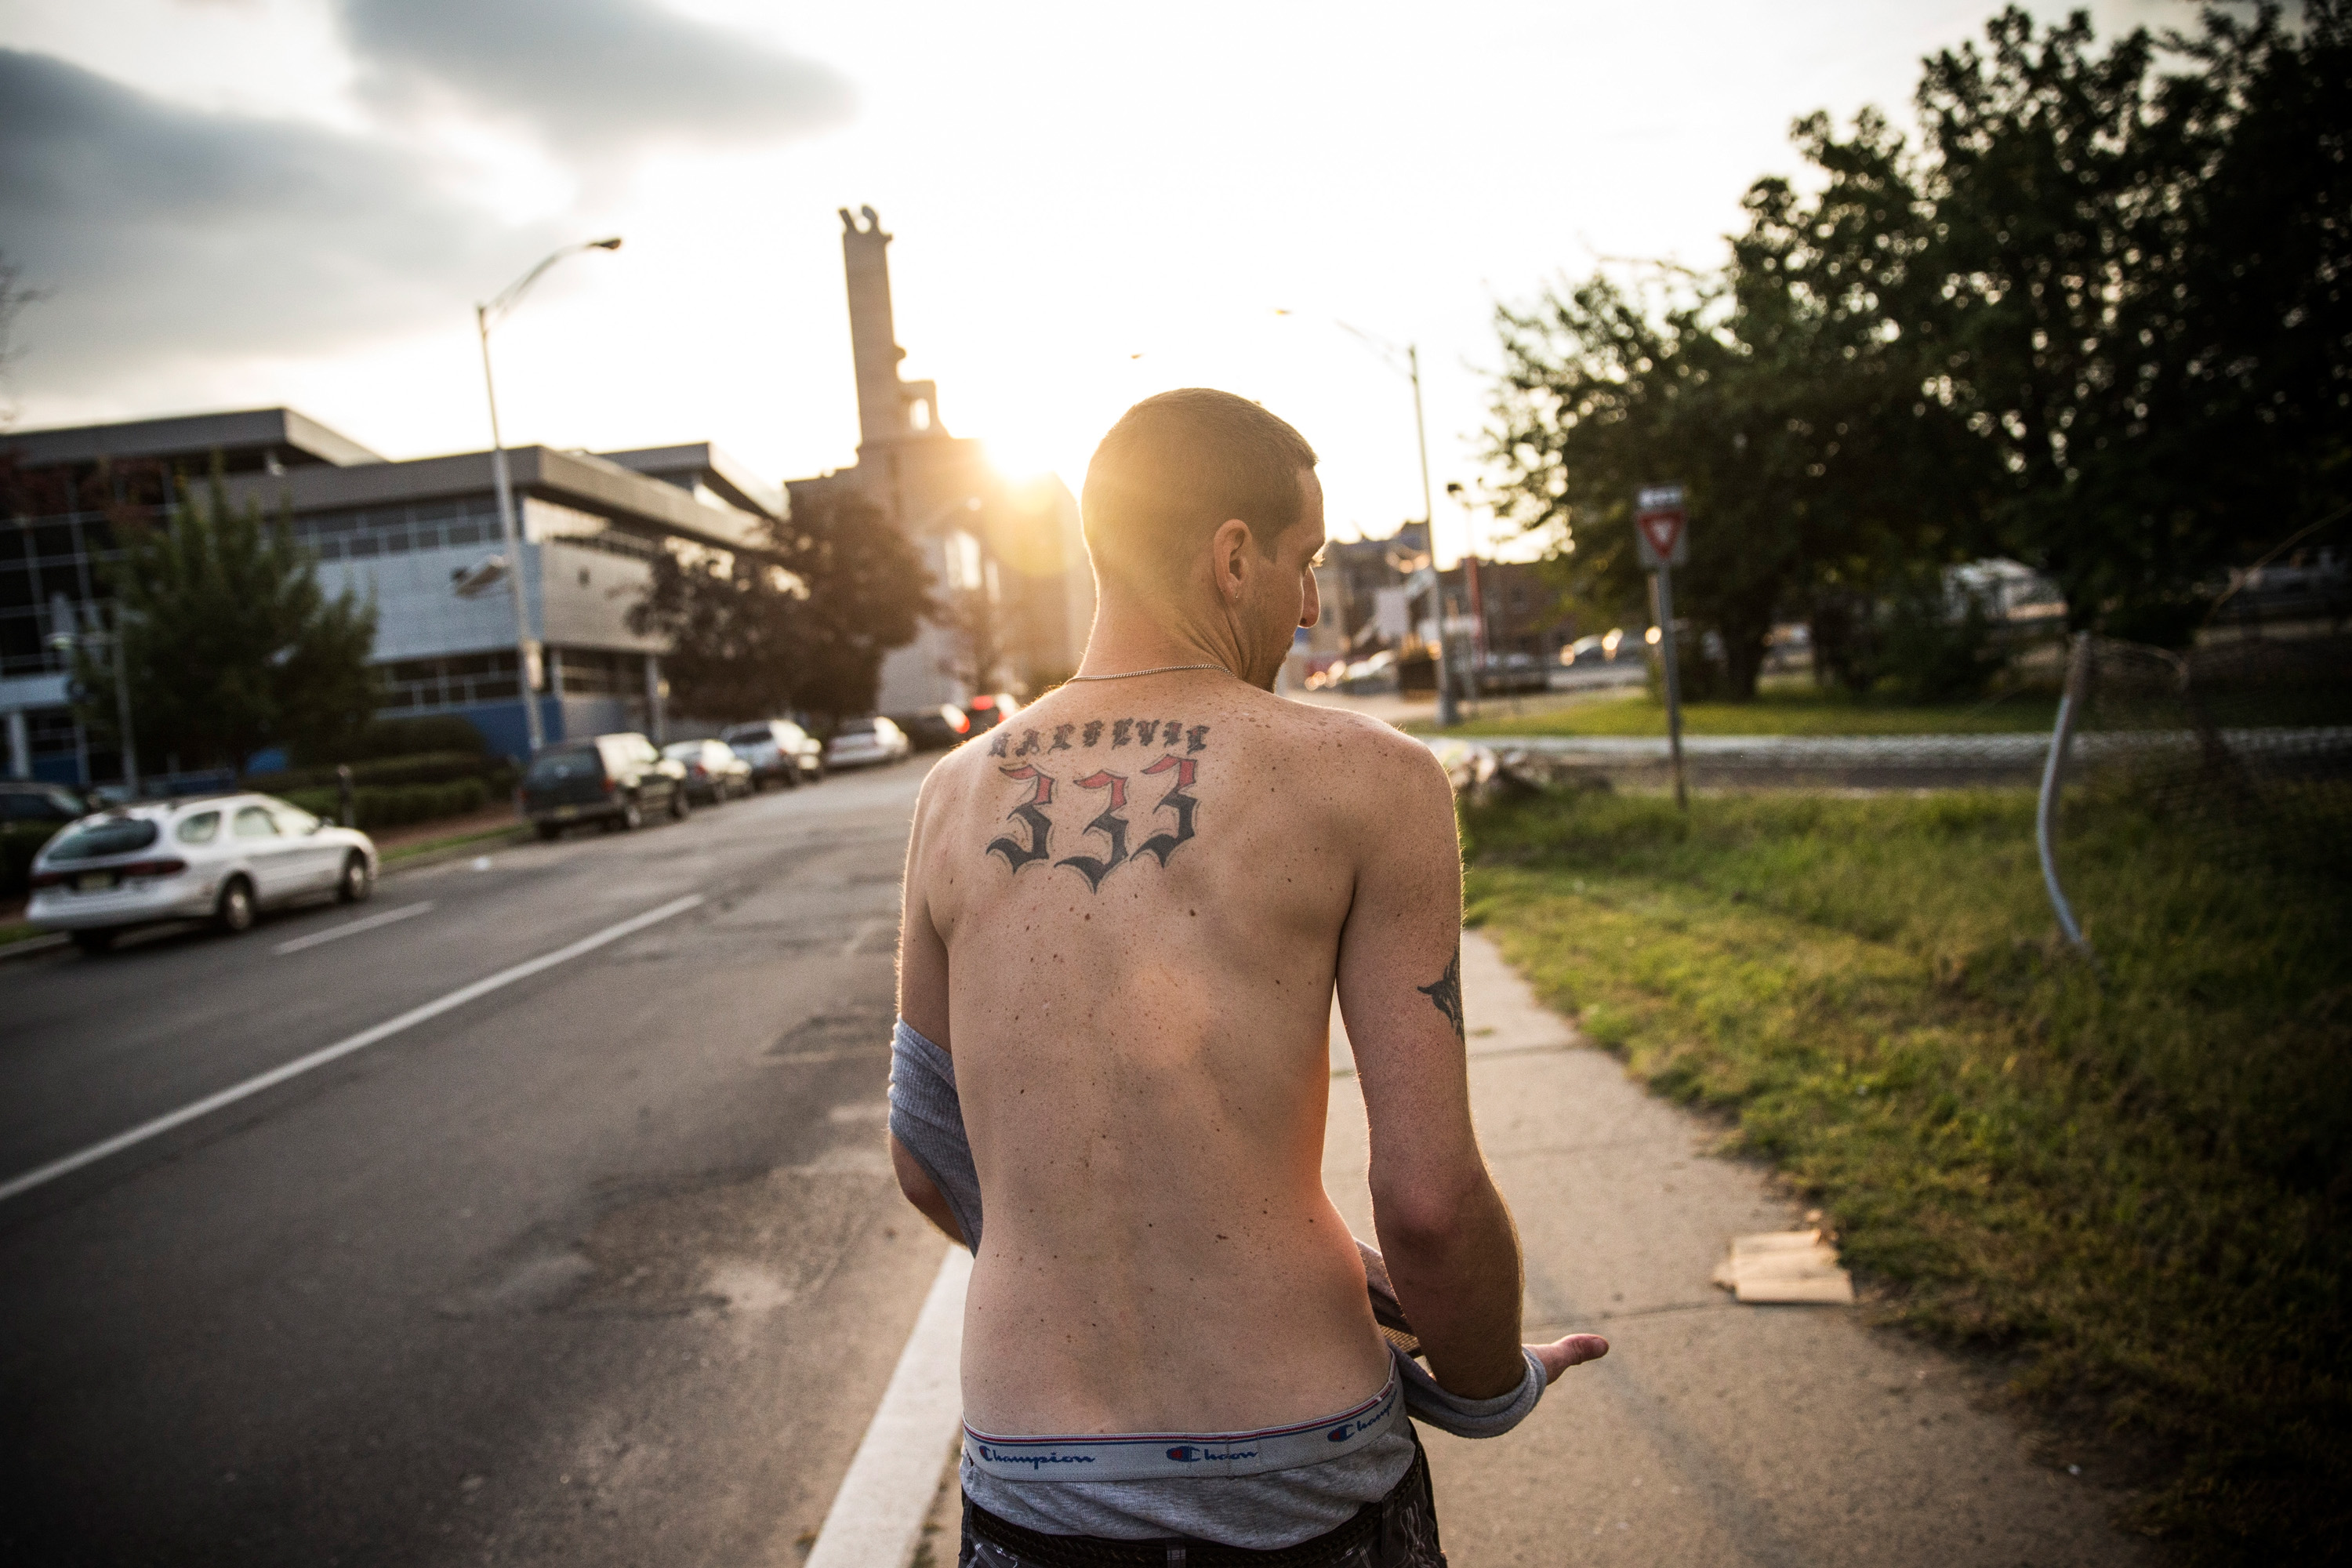 Reggy Colby, age 30 and a recovering heroin addict, walks down the street, on Aug. 21, 2013 in Camden, NJ.